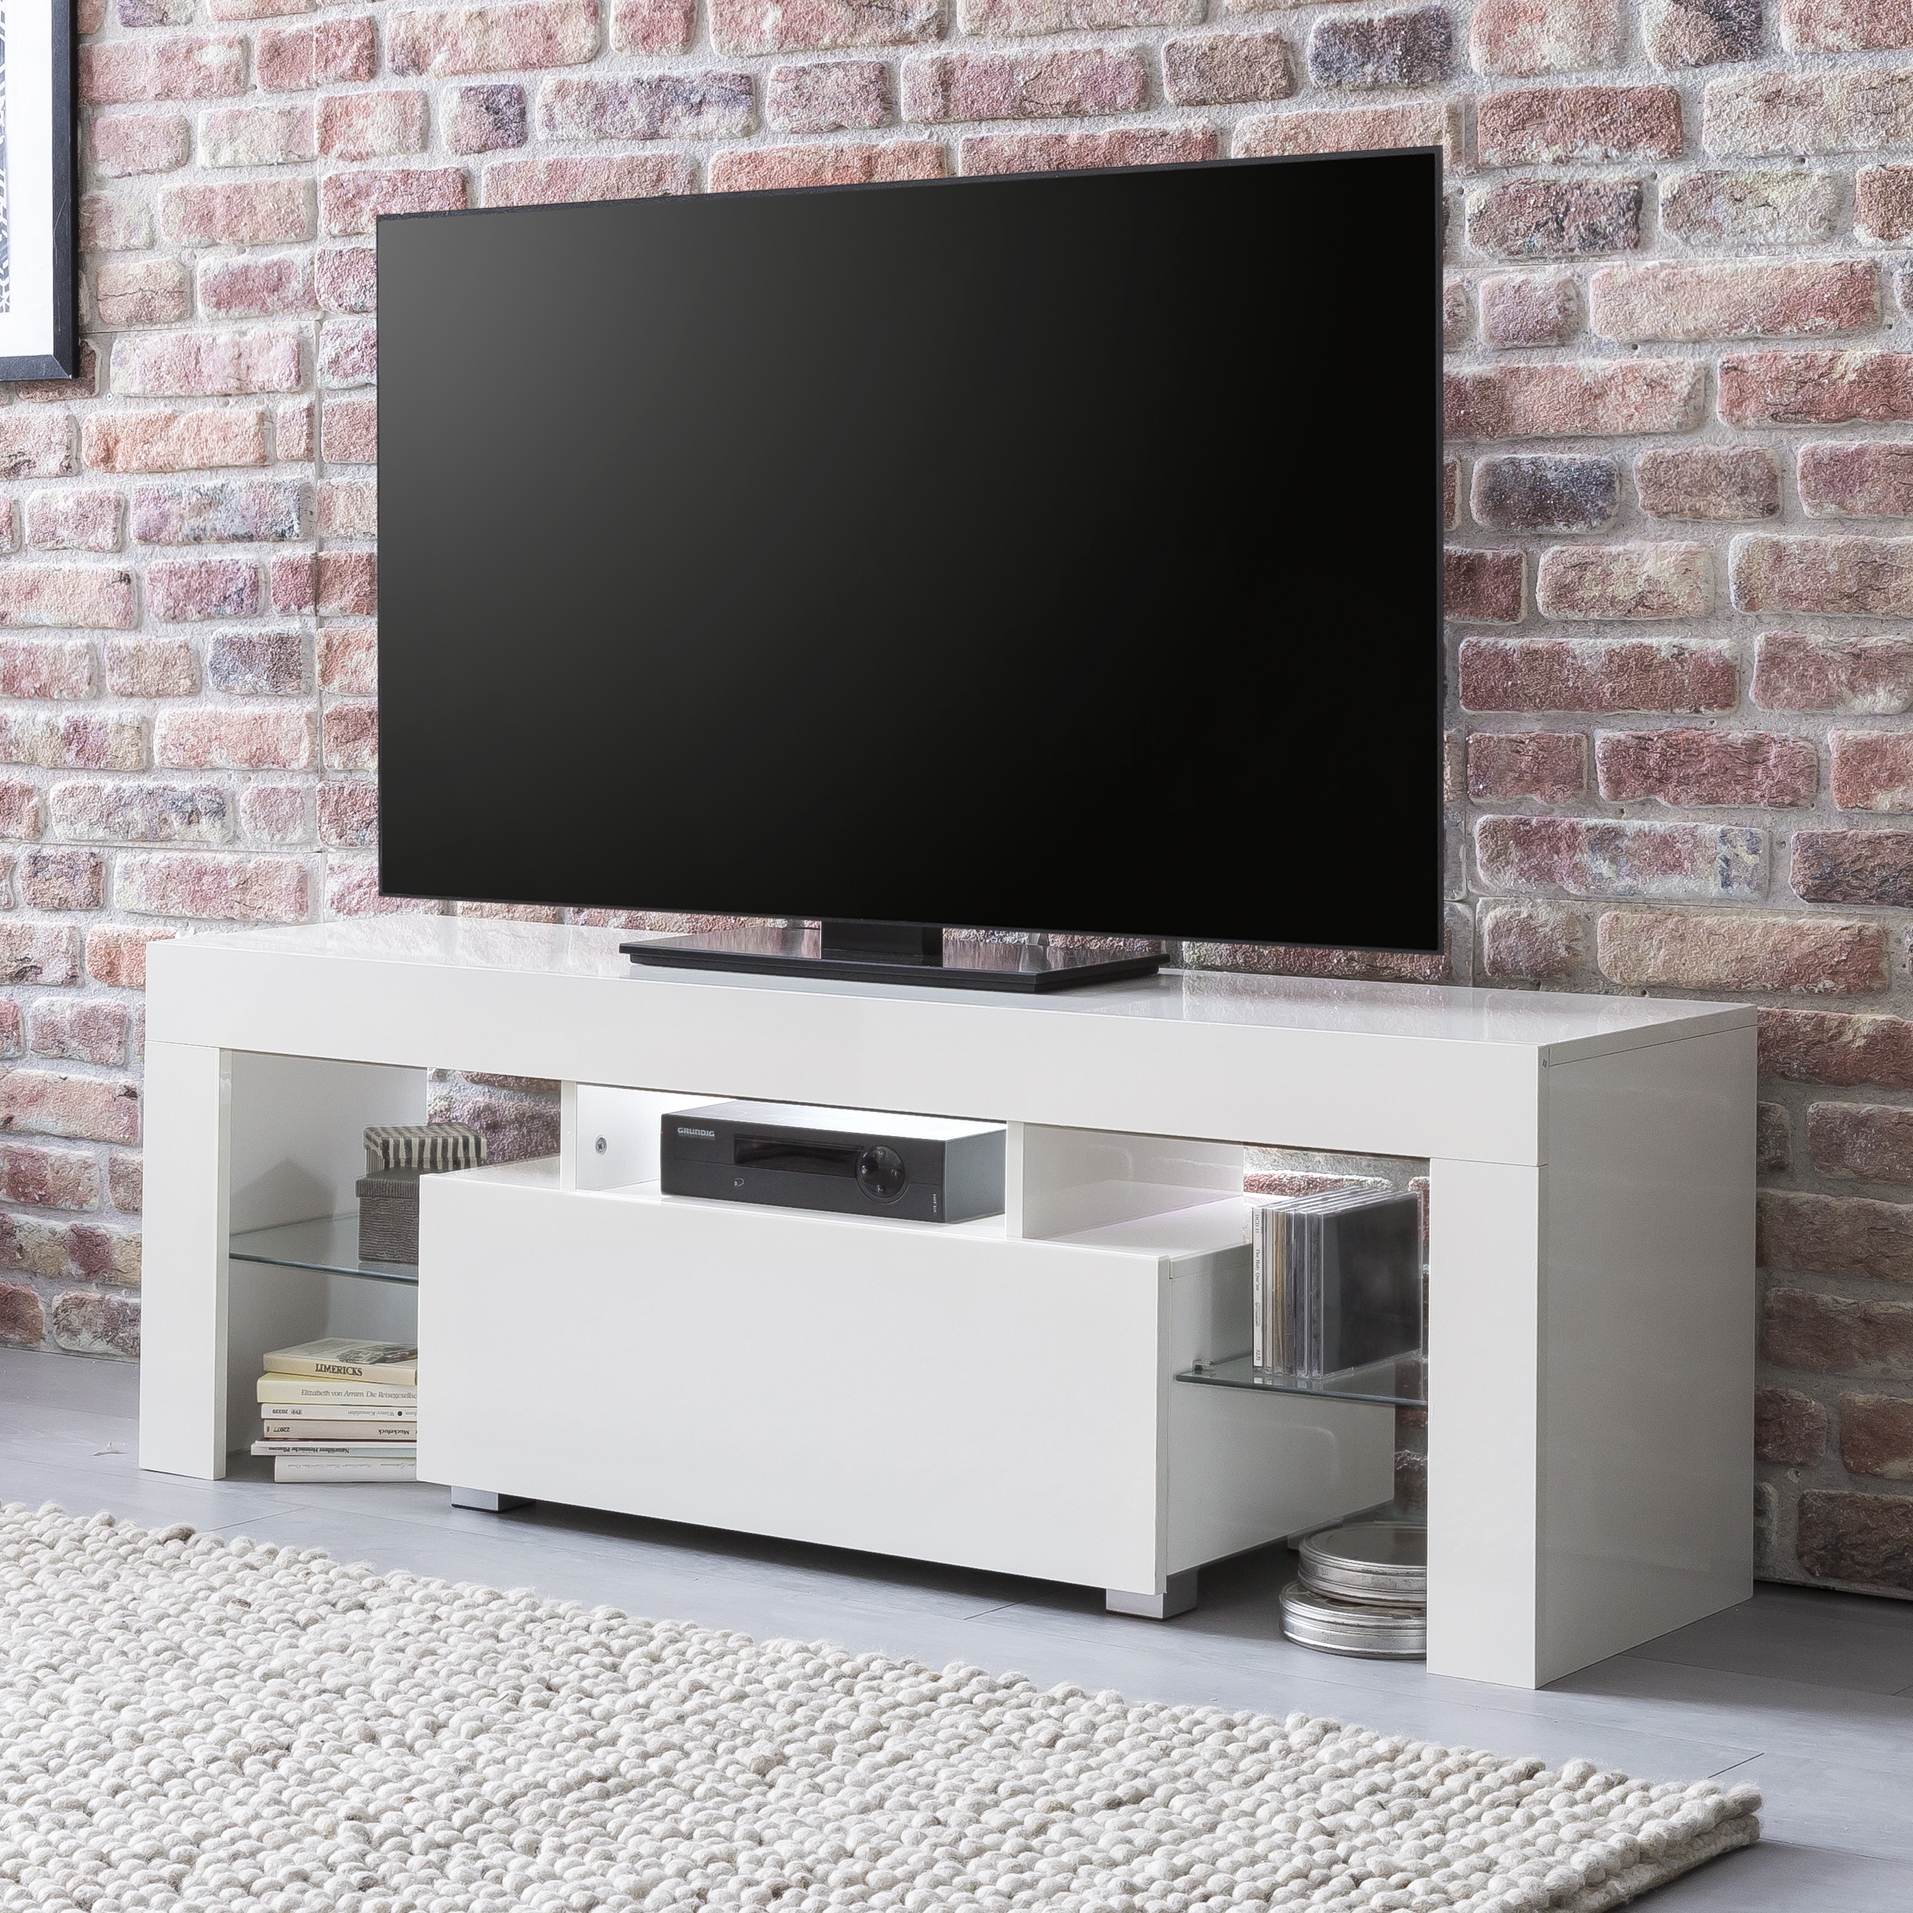 Meuble Tv 130 Cm Meuble Tv Telio Blanc Brillant 1 Tiroir Led Blanc 130 Cm